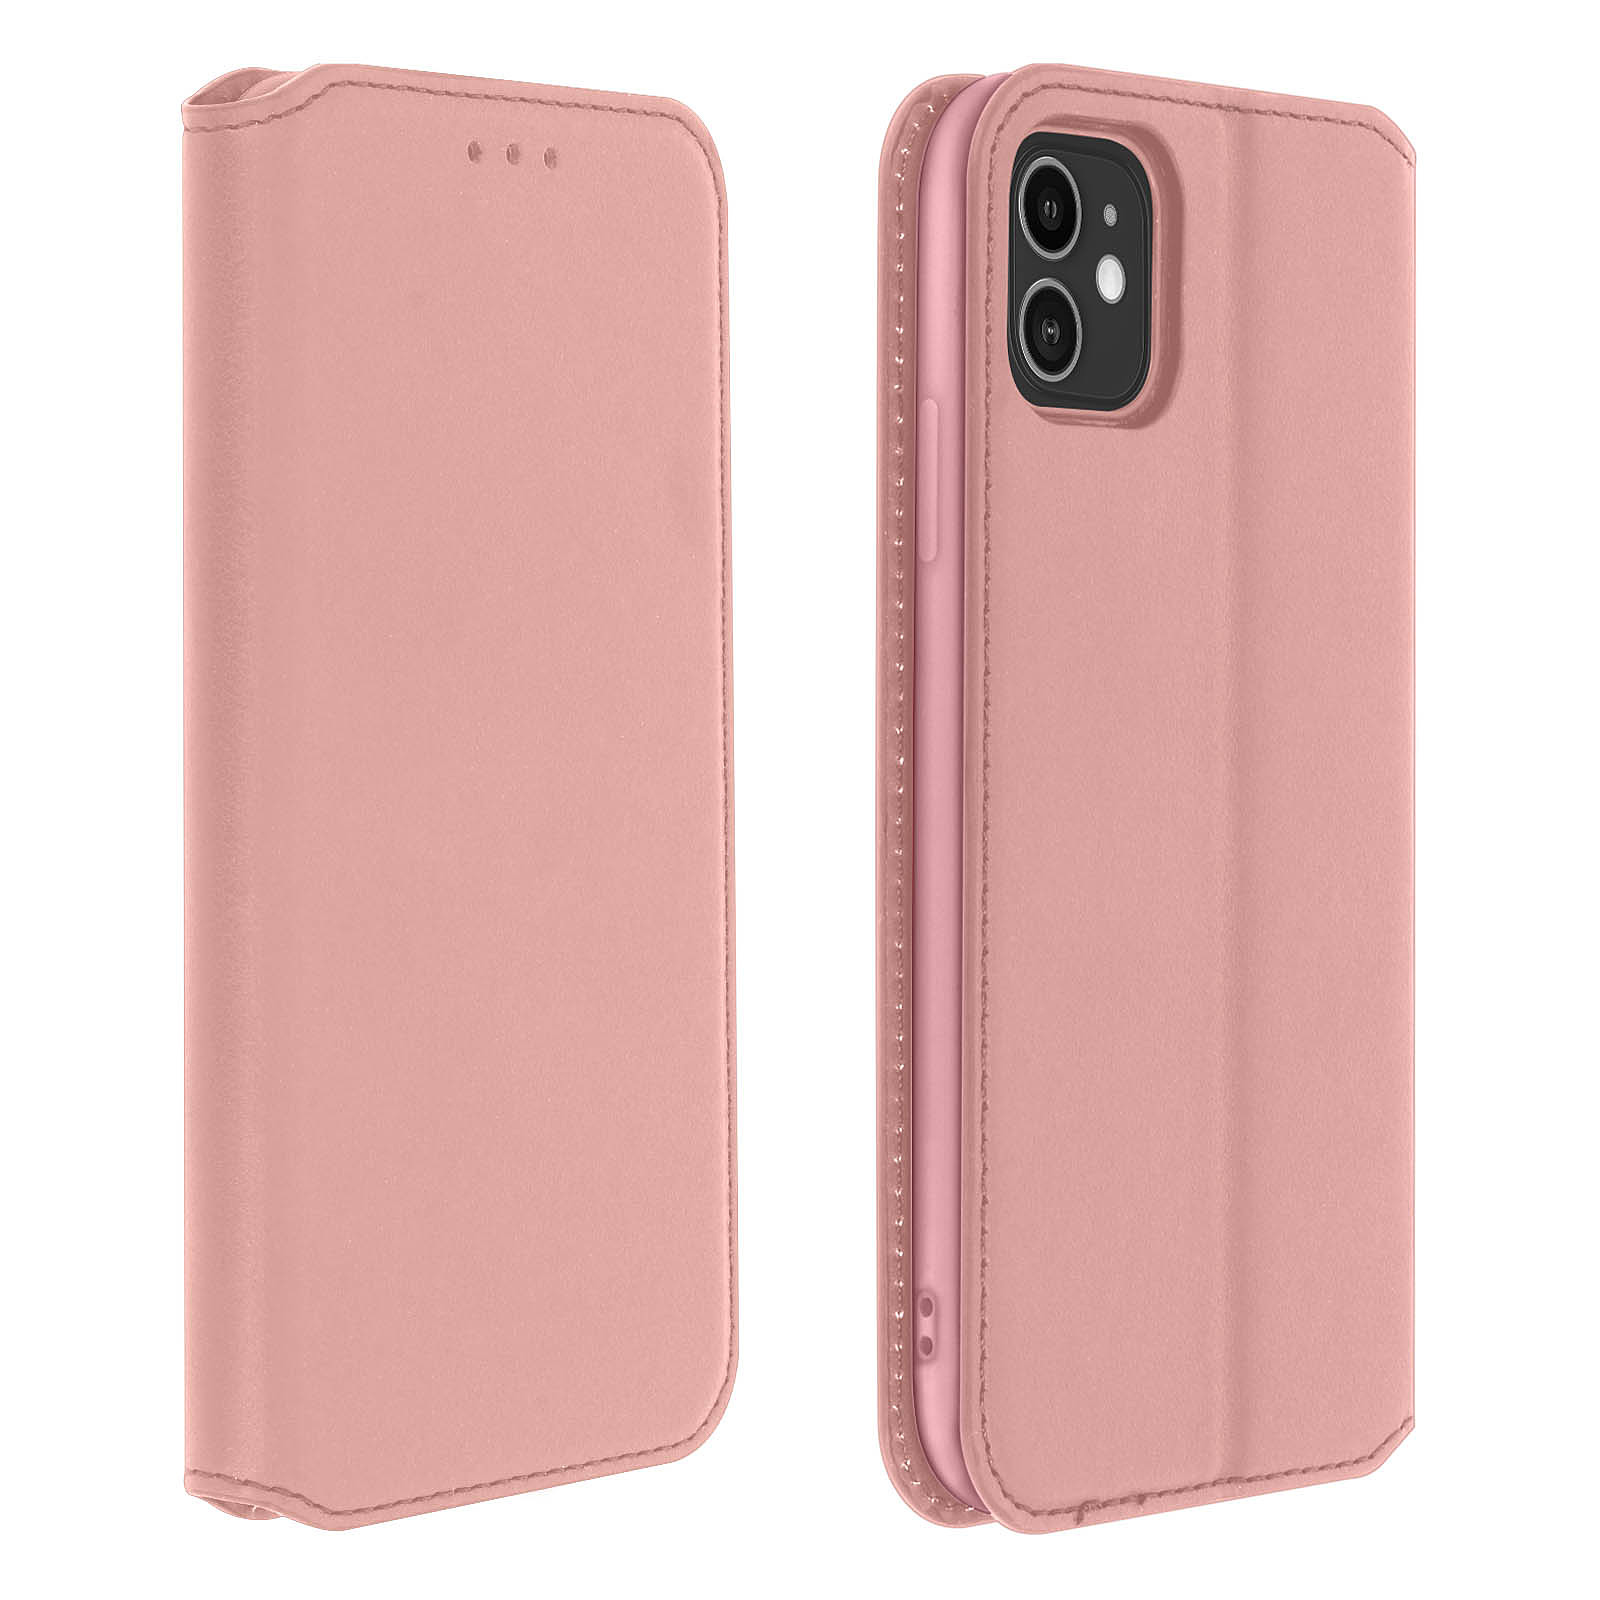 Avizar Etui folio Rose Champagne Éco-cuir pour Apple iPhone 11